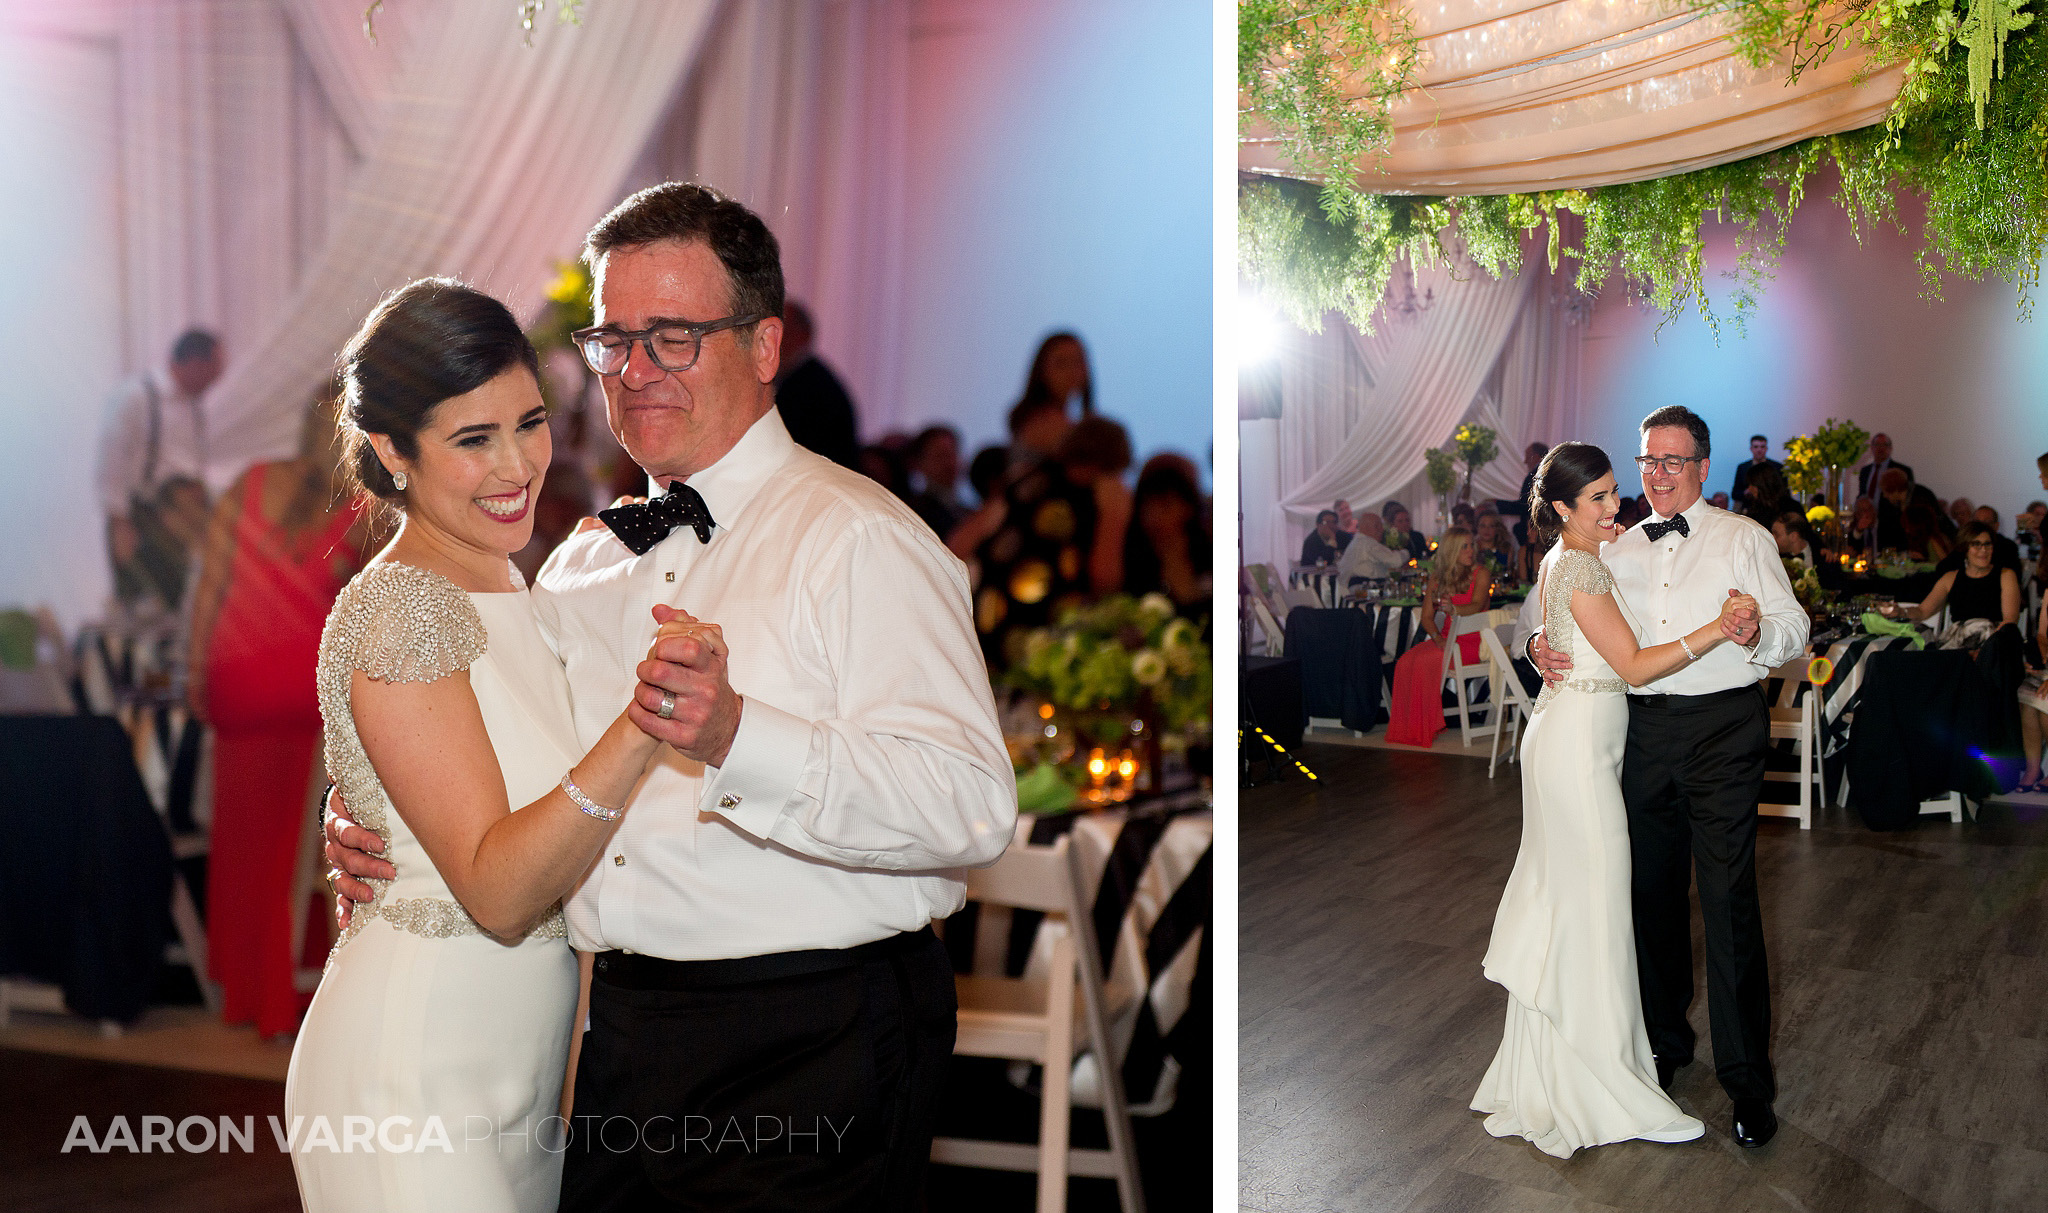 40 father daughter dance j verno - Mimi + Mike | Hotel Monaco and J. Verno Studios Wedding Photos